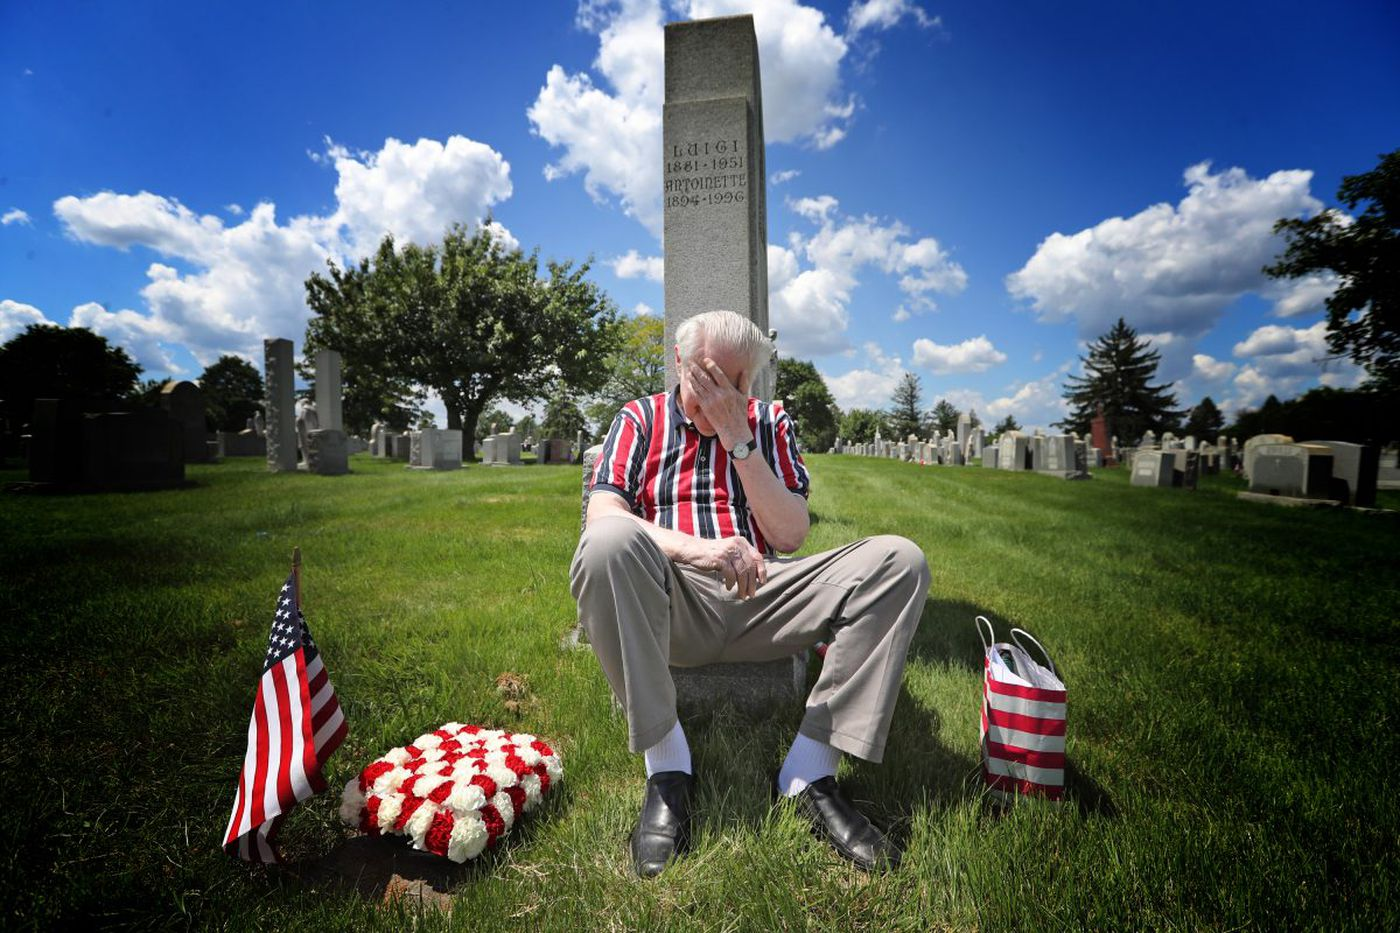 A 66-year journey: Korean War vet finally says goodbye to his fallen friend lost 66 years ago